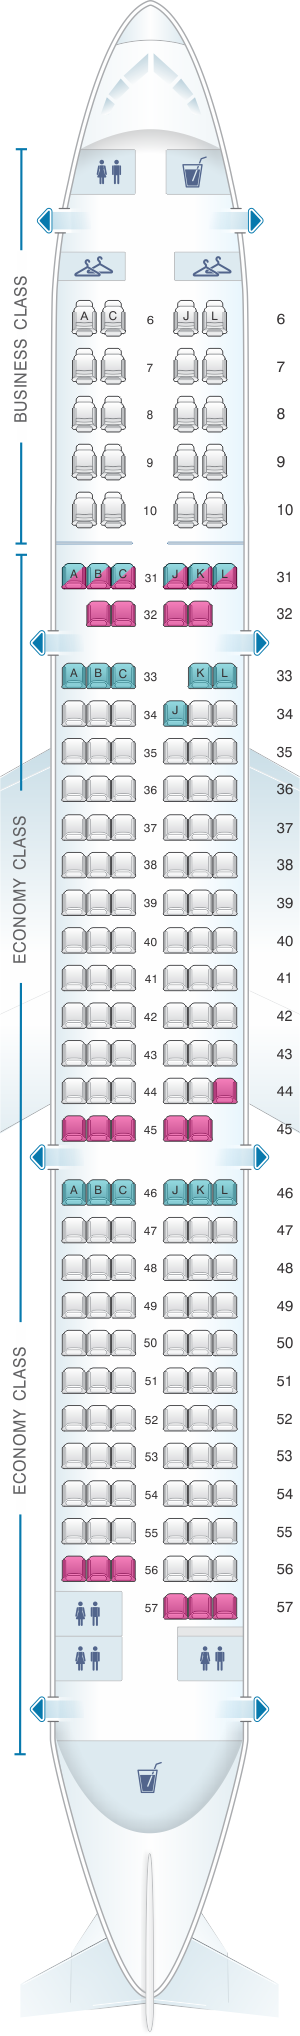 Seat Map China Eastern Airlines Airbus A321 200 175PAX ... China Eastern Airlines Seat Map on etihad airlines seat map, american airlines seat map, china airlines 777-300 economy, china eastern airlines business class, united airlines seat map, china southern airlines seat map, air china seat map, japan airlines seat map, china airlines 777-300er, iberia airlines seat map, copa airlines seat map, shanghai airlines seat map, china airlines seat selection, garuda airlines seat map, lan airlines seat map, south african airlines seat map, ethiopian airlines seat map, croatia airlines seat map, china eastern airlines route map, china eastern airlines seat assignment,